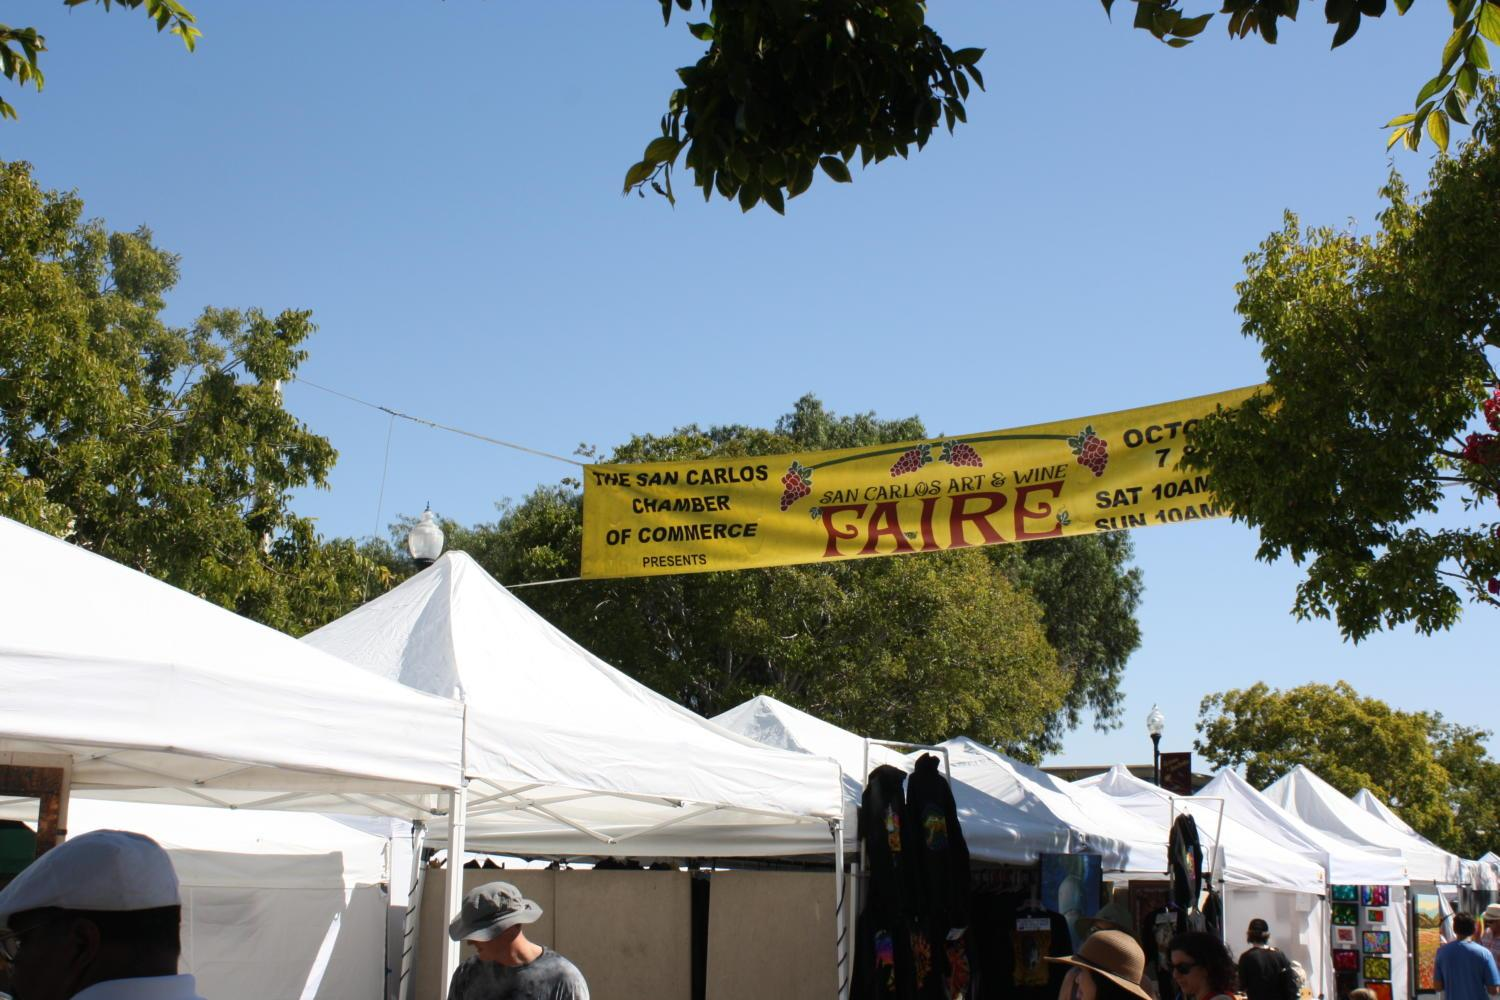 The Art and Wine Faire stretched throughout downtown San Carlos, drawing big crowds amidst the high temperatures of the weekend.